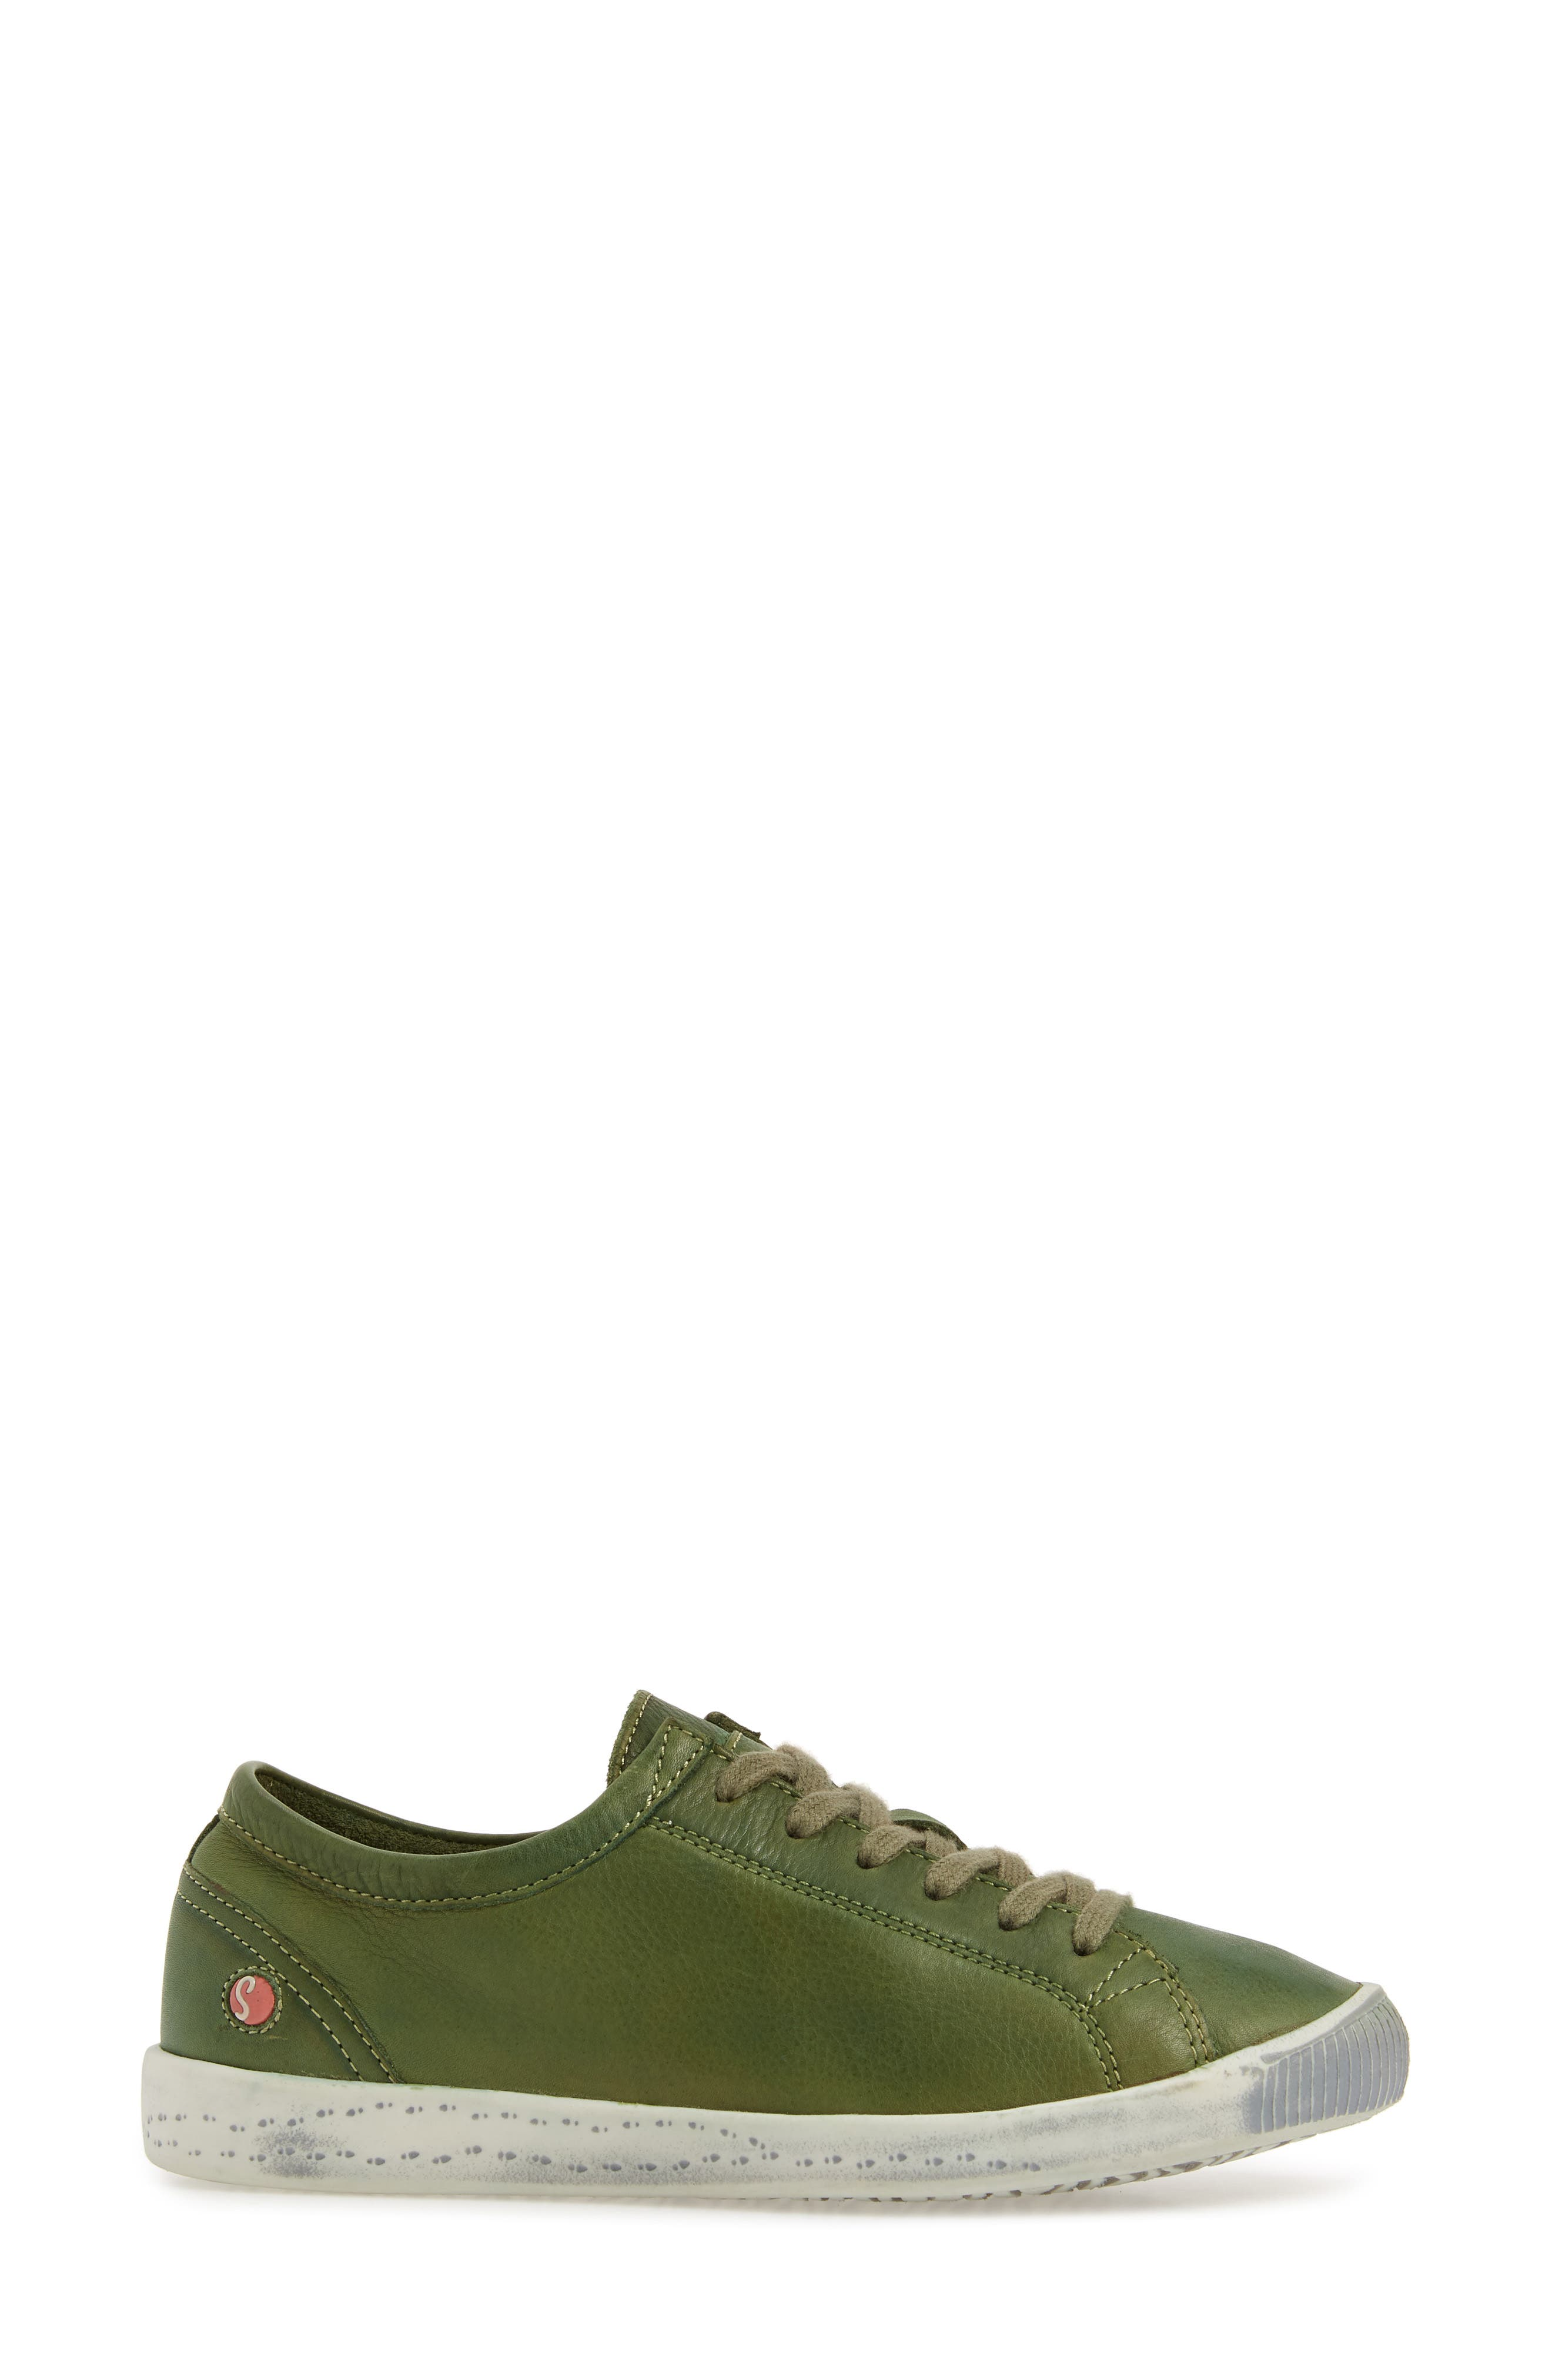 Isla Distressed Sneaker,                             Alternate thumbnail 5, color,                             Forest Green Washed Leather